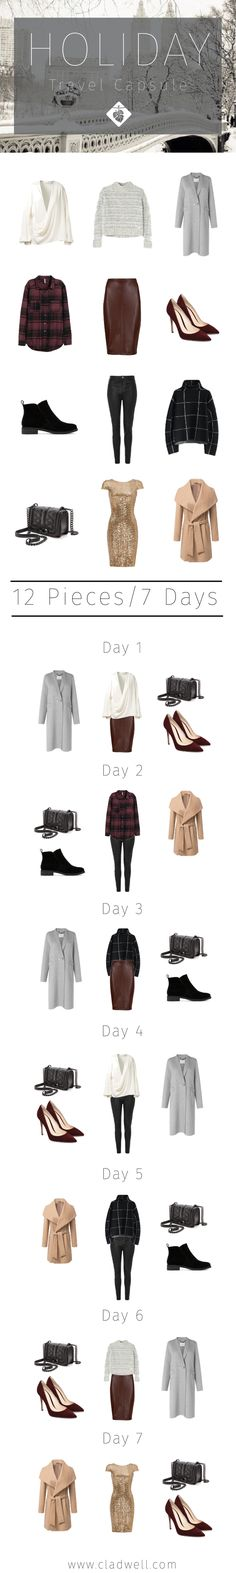 What to Pack for the Holidays: 7 Days, 7 Outfits, 12 Pieces — CLADWELL GUIDE